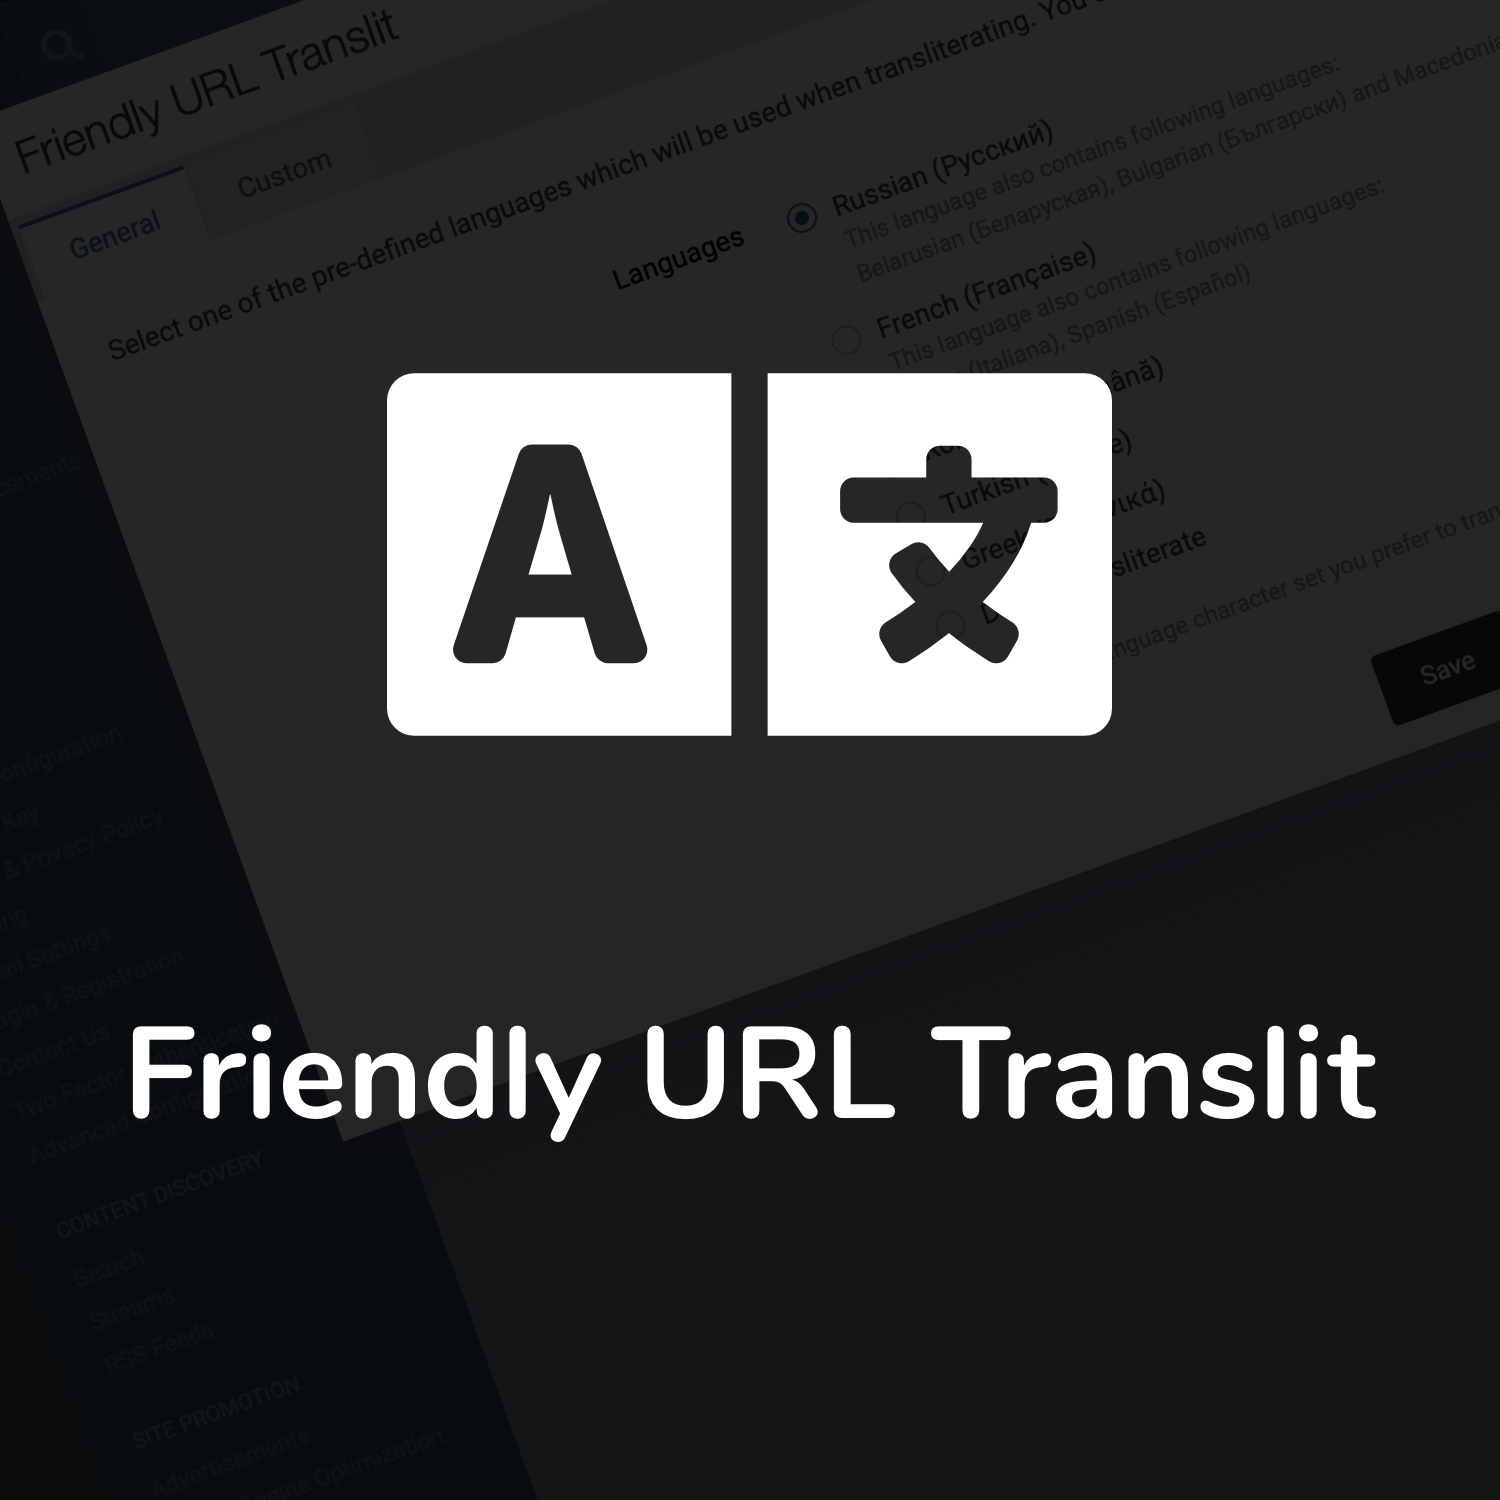 Friendly URL Translit